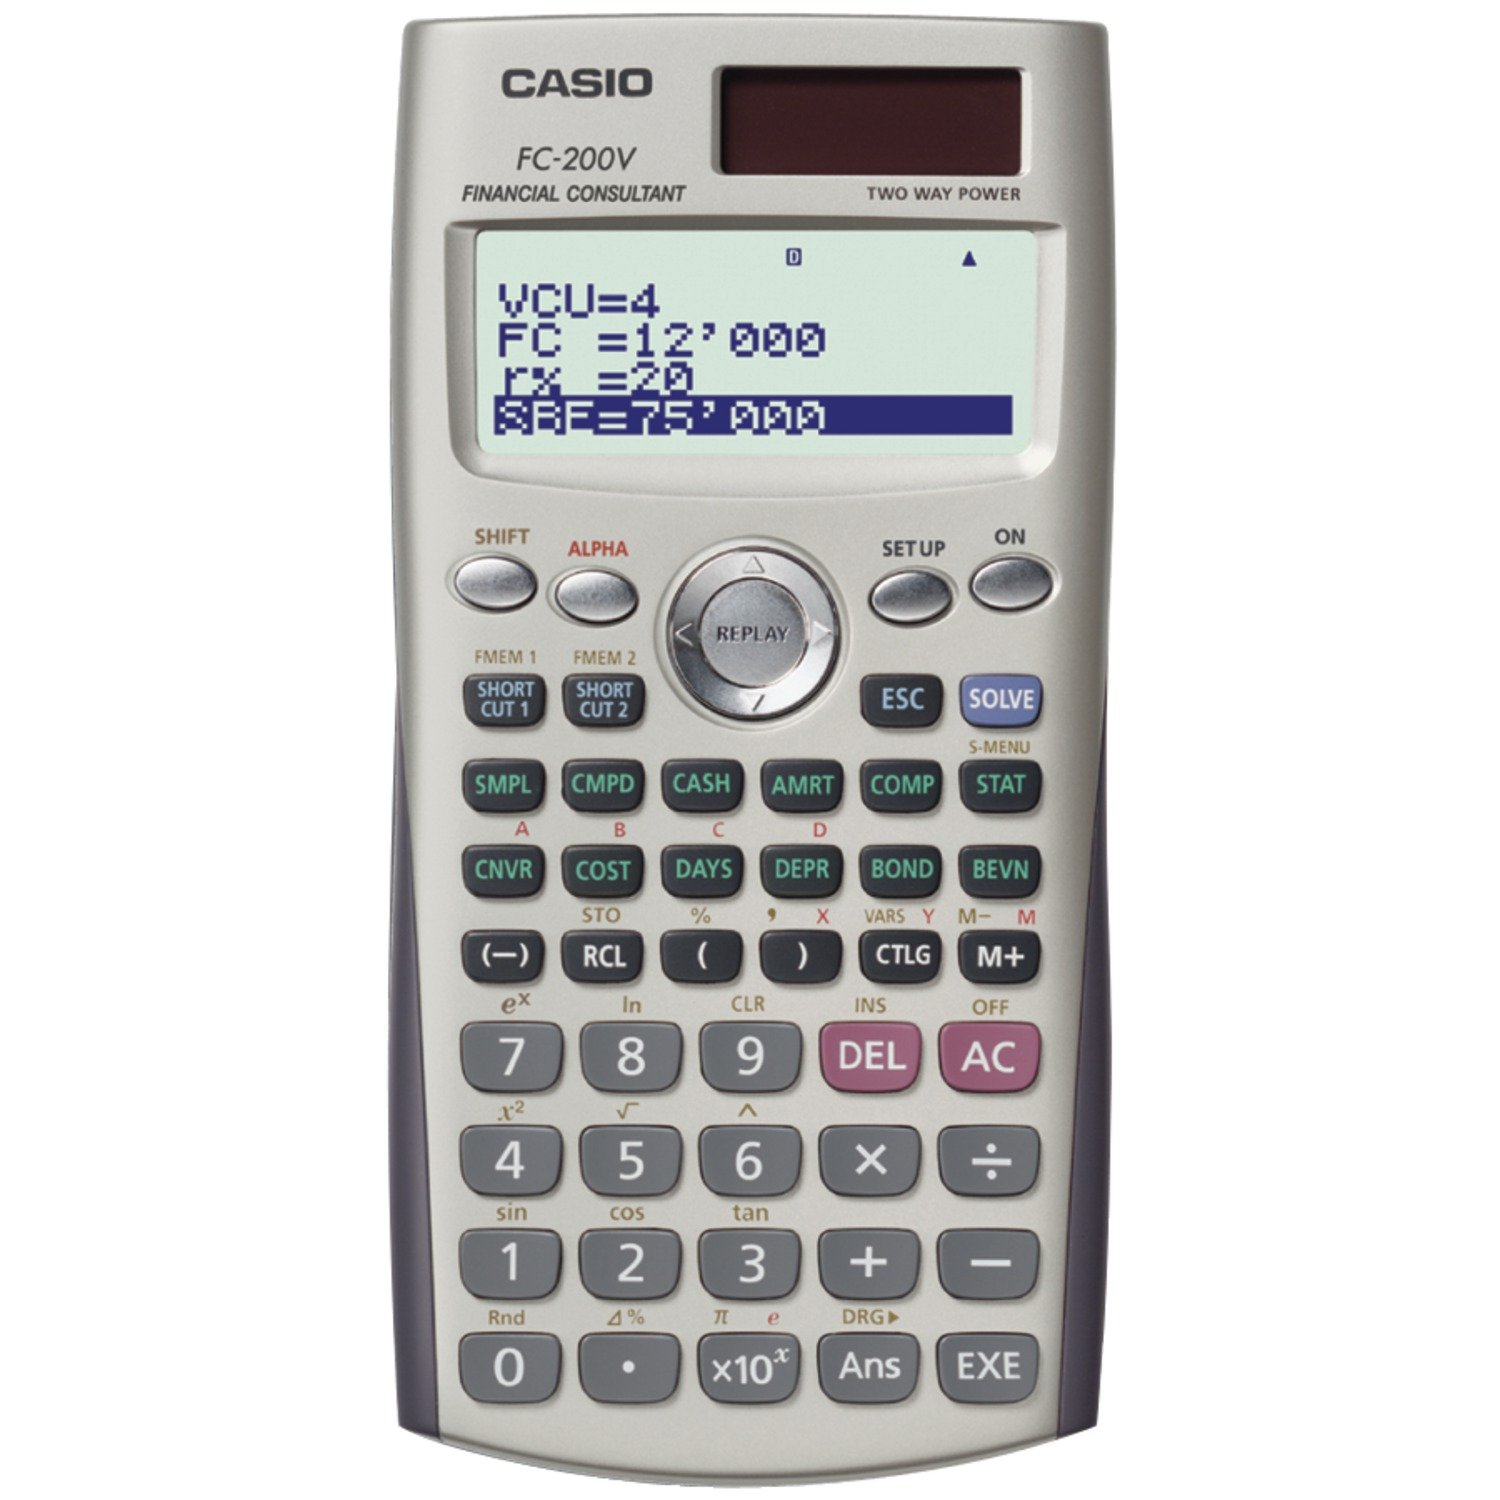 Casio FC-200V Financial Calculator with 4-Line Display by Casio